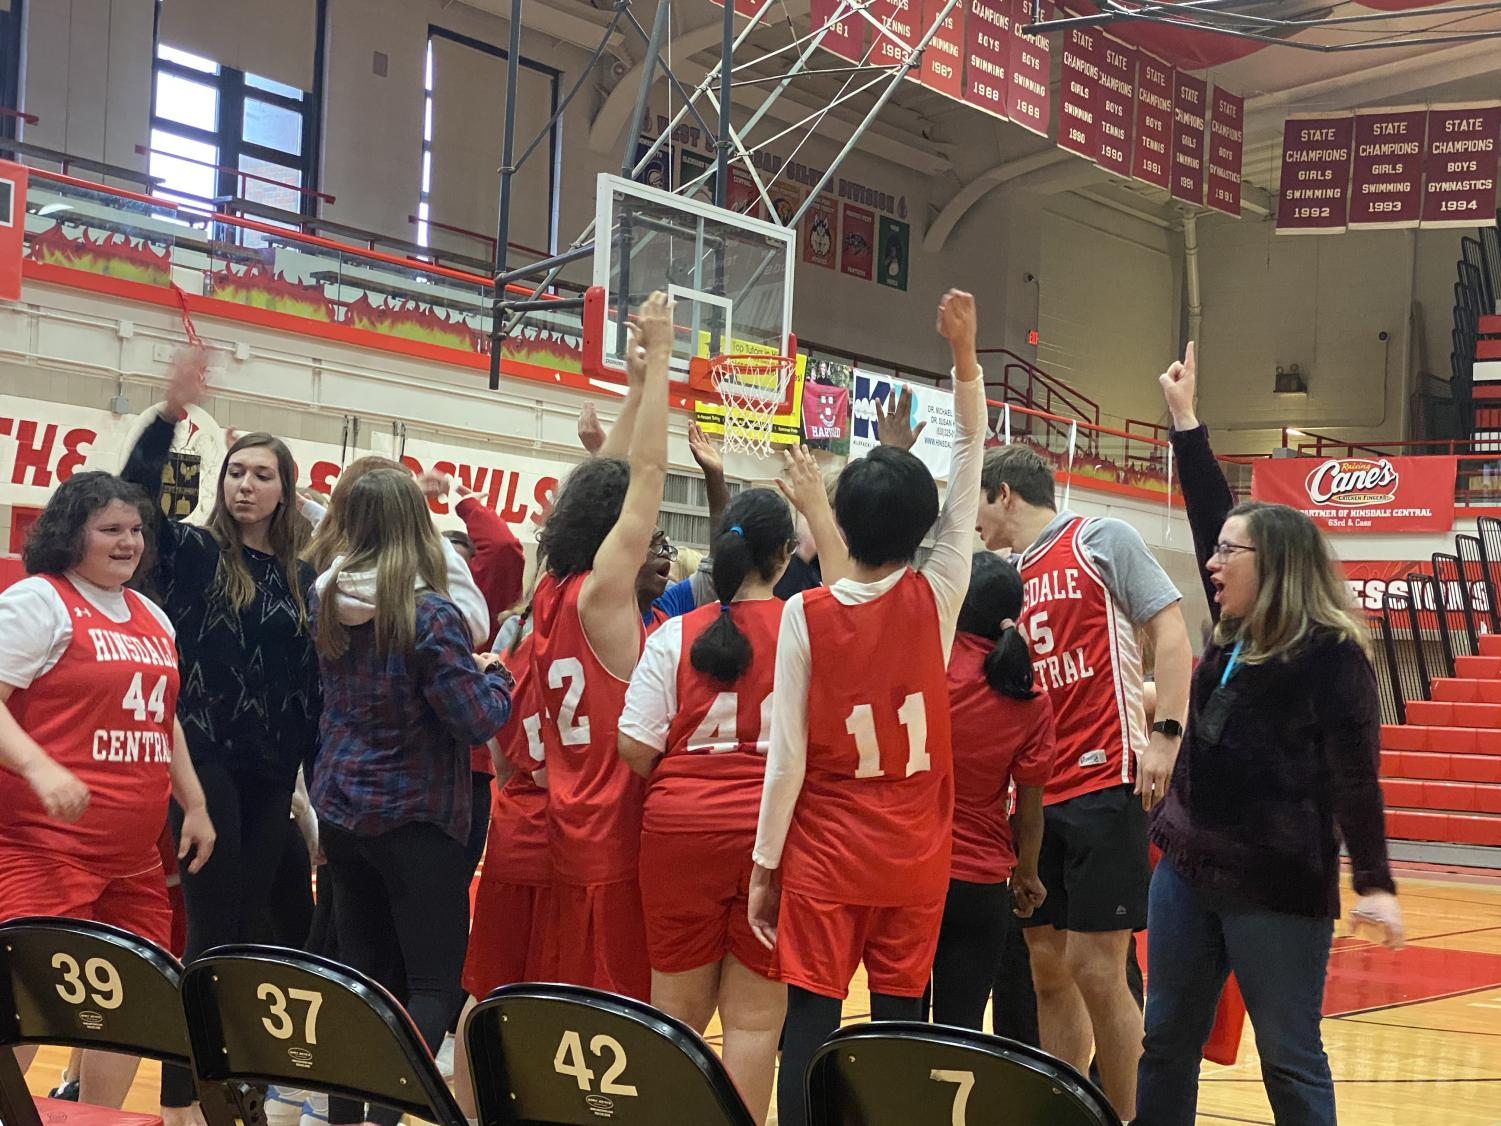 The+team+sets+up+for+success+with+a+pre-game+cheer.+Throughout+the+game%2C+the+team+members+continue+to+support+each+other+through+cheers+and+high-fives.+